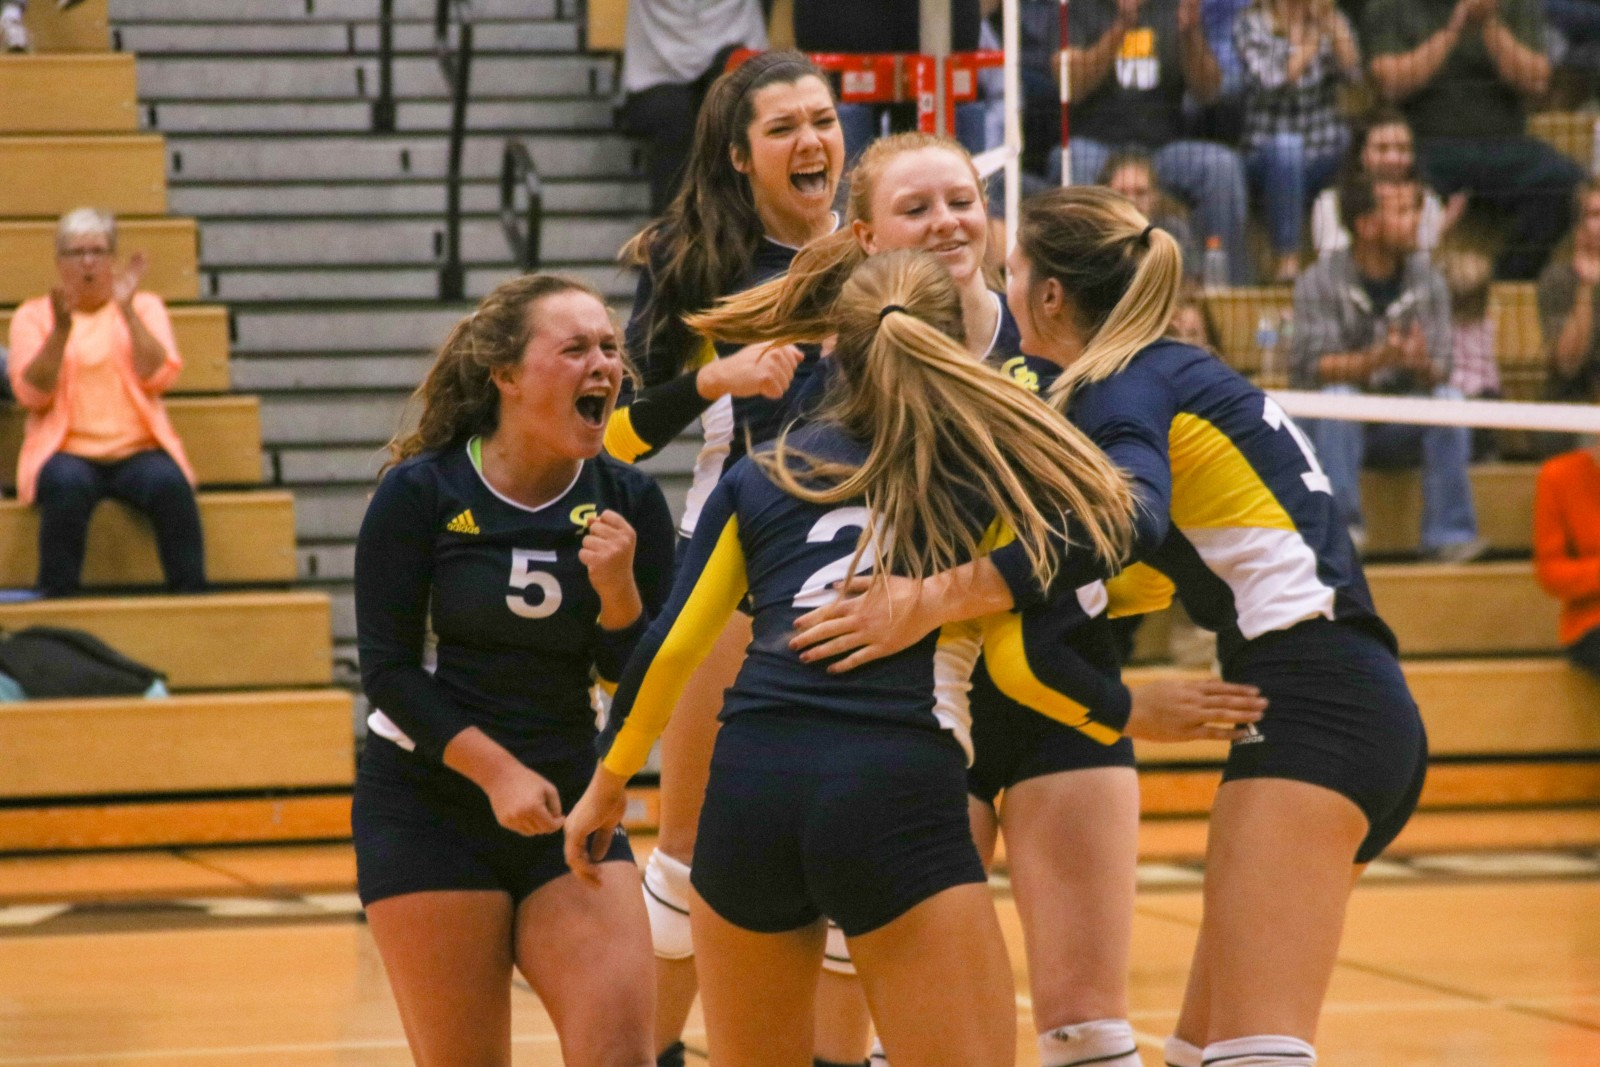 Energy and emotion break through as the GRCC volleyball team gains momentum against Muskegon CC.